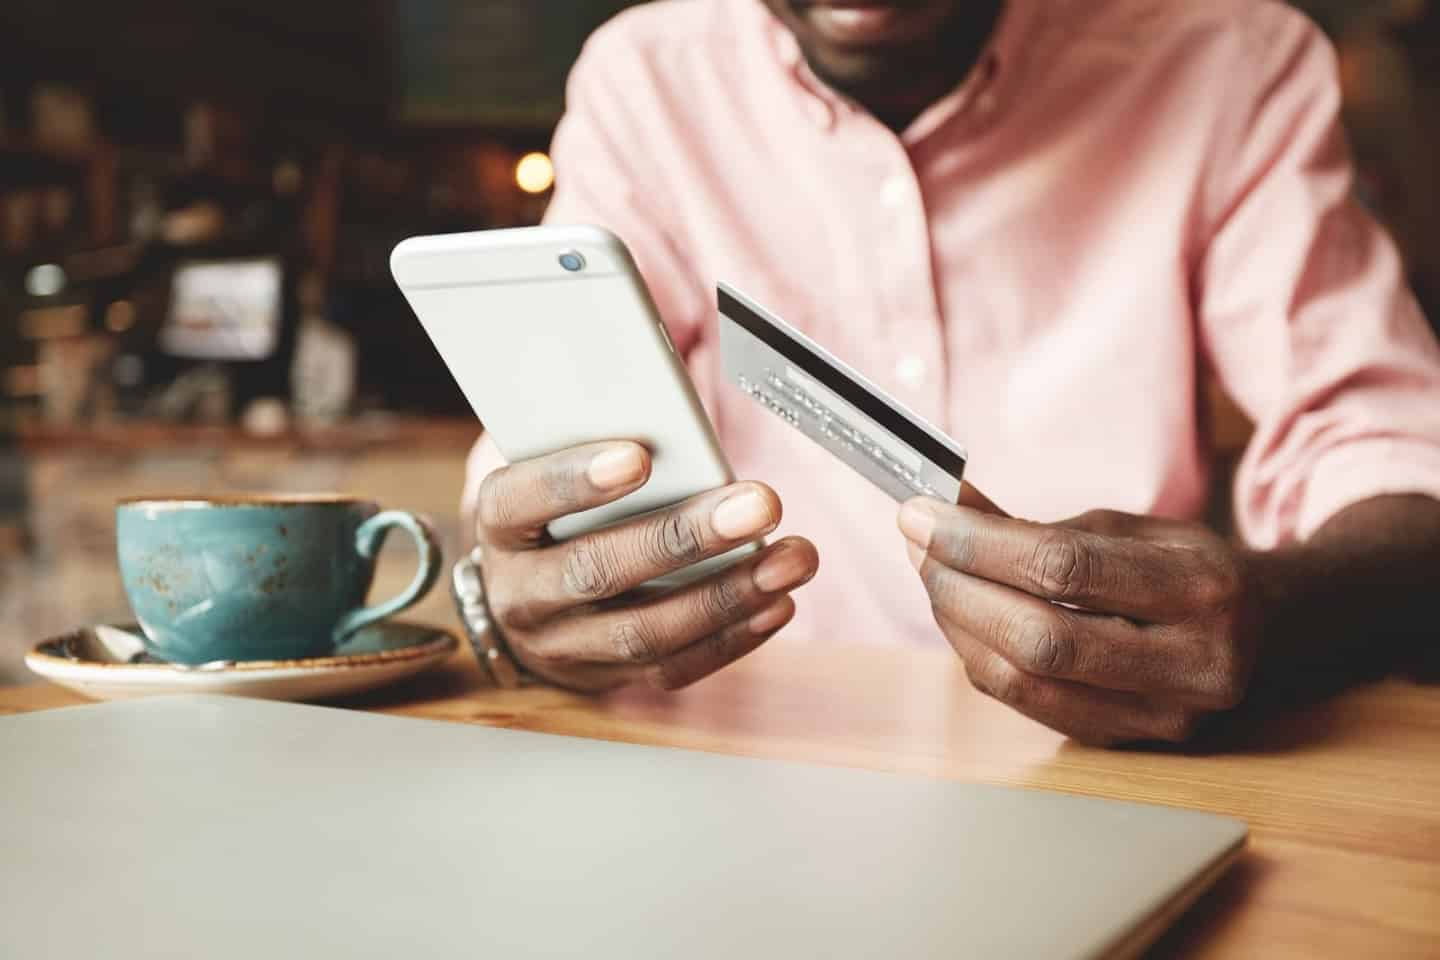 Top Mobile Marketing Strategies to Supercharge In‑app Purchases